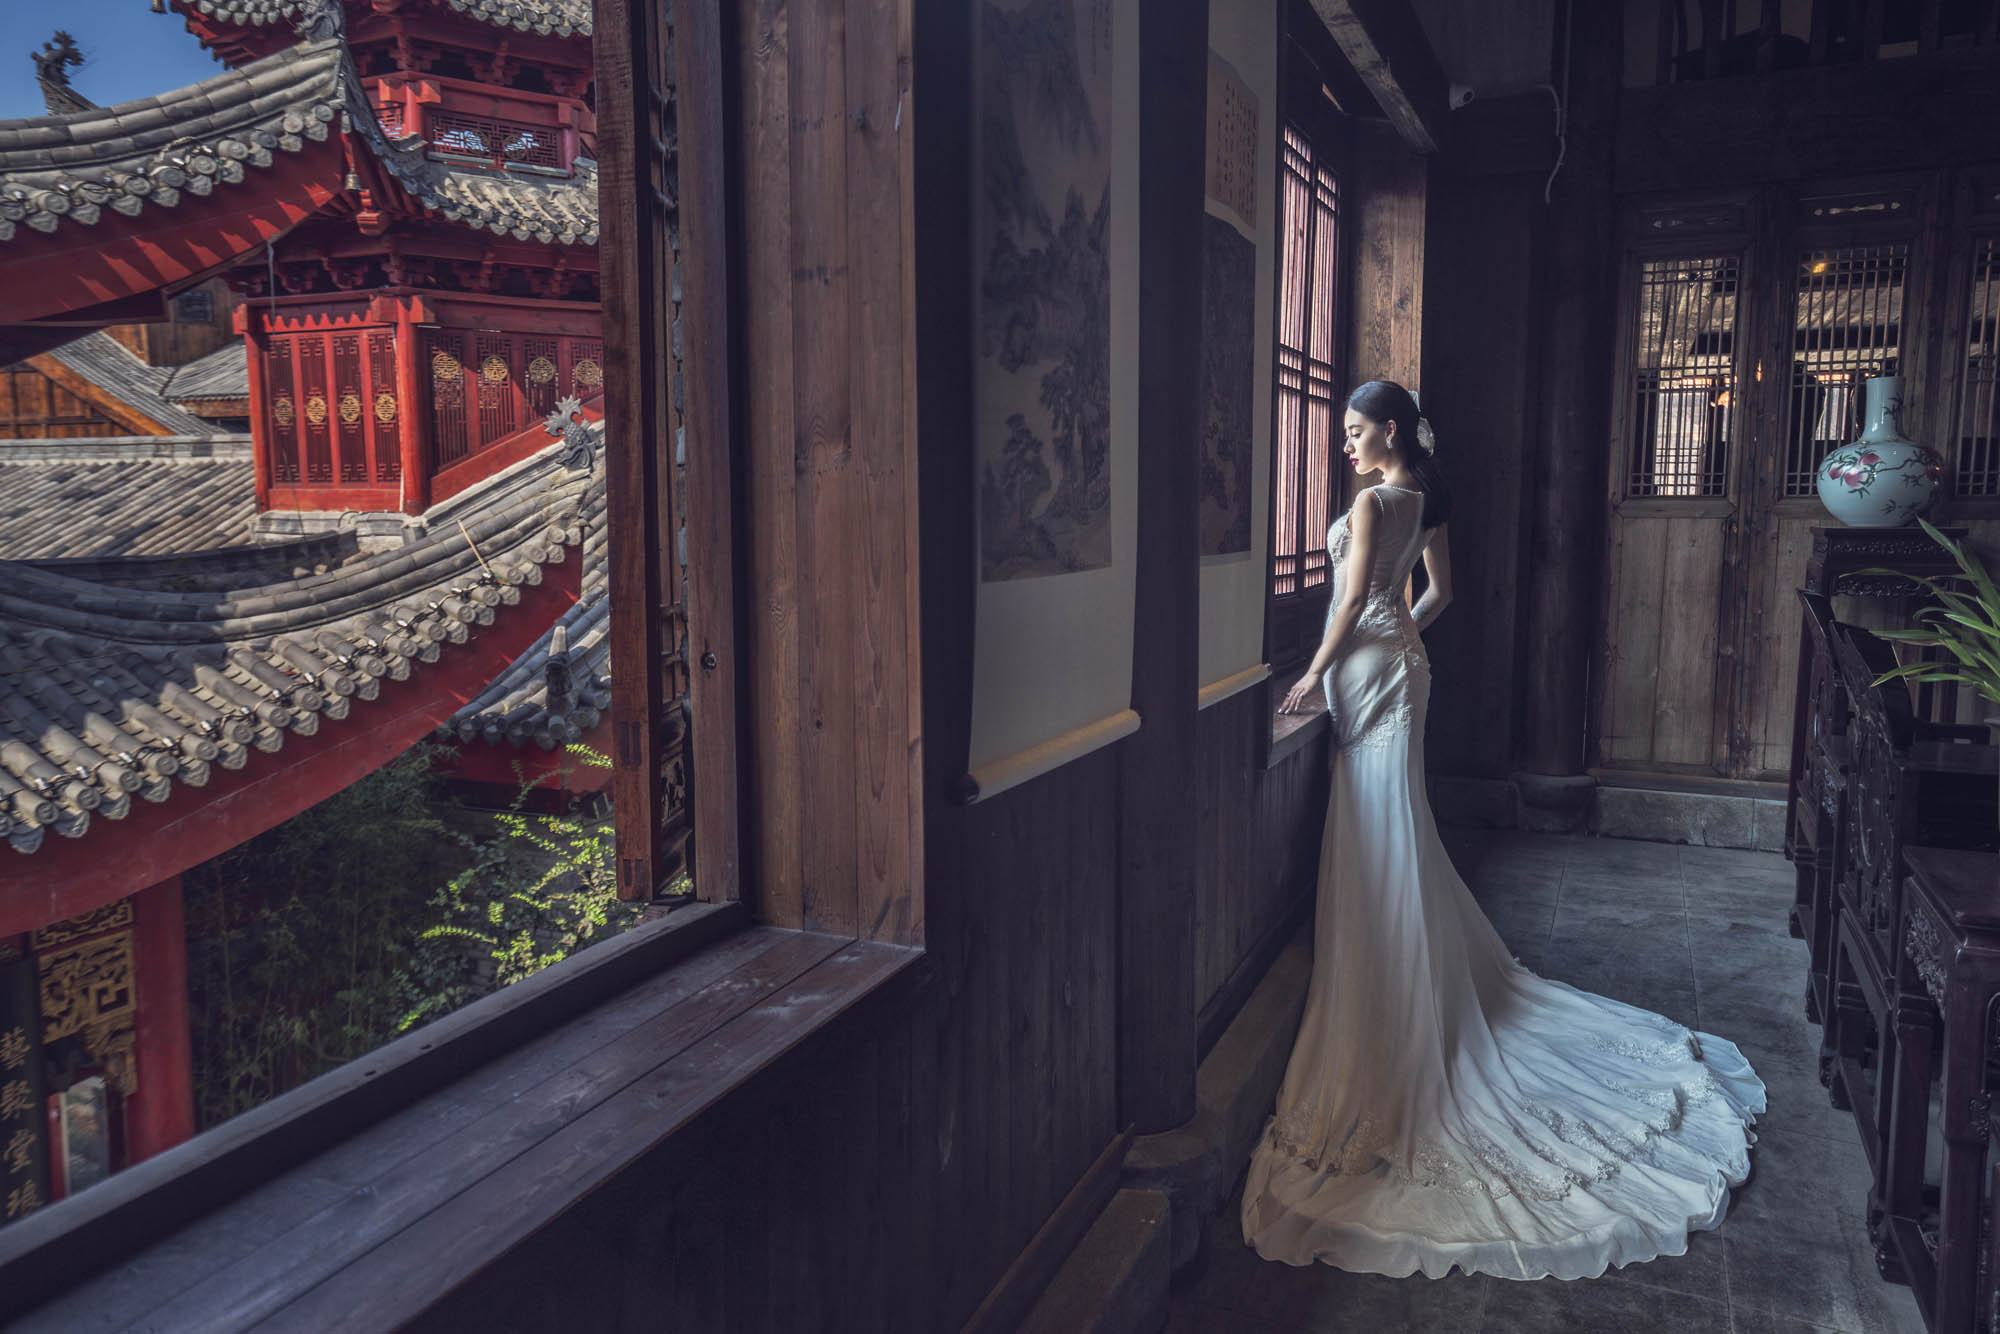 Bride in satin or crepe gown standing in Chinese temple, by CM Leung